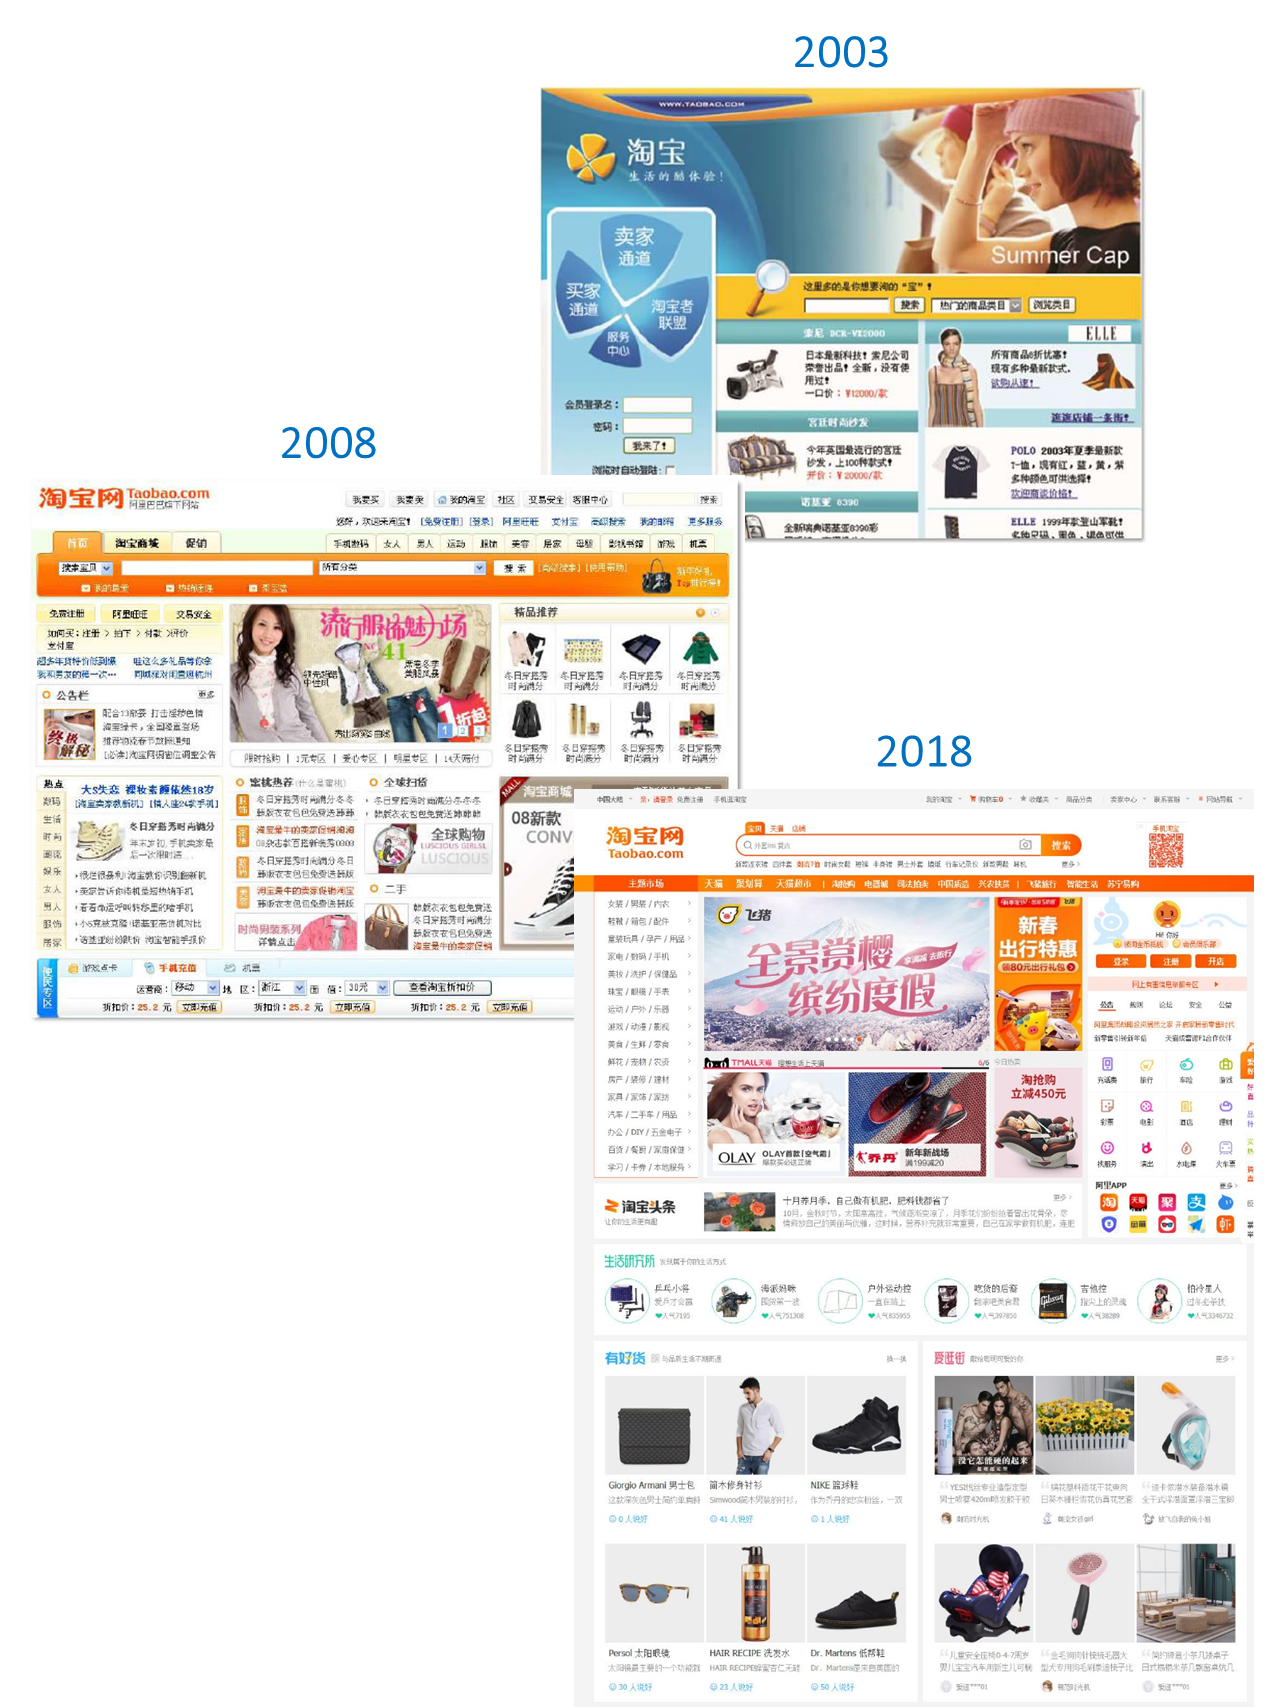 Taobao websites throughout the years